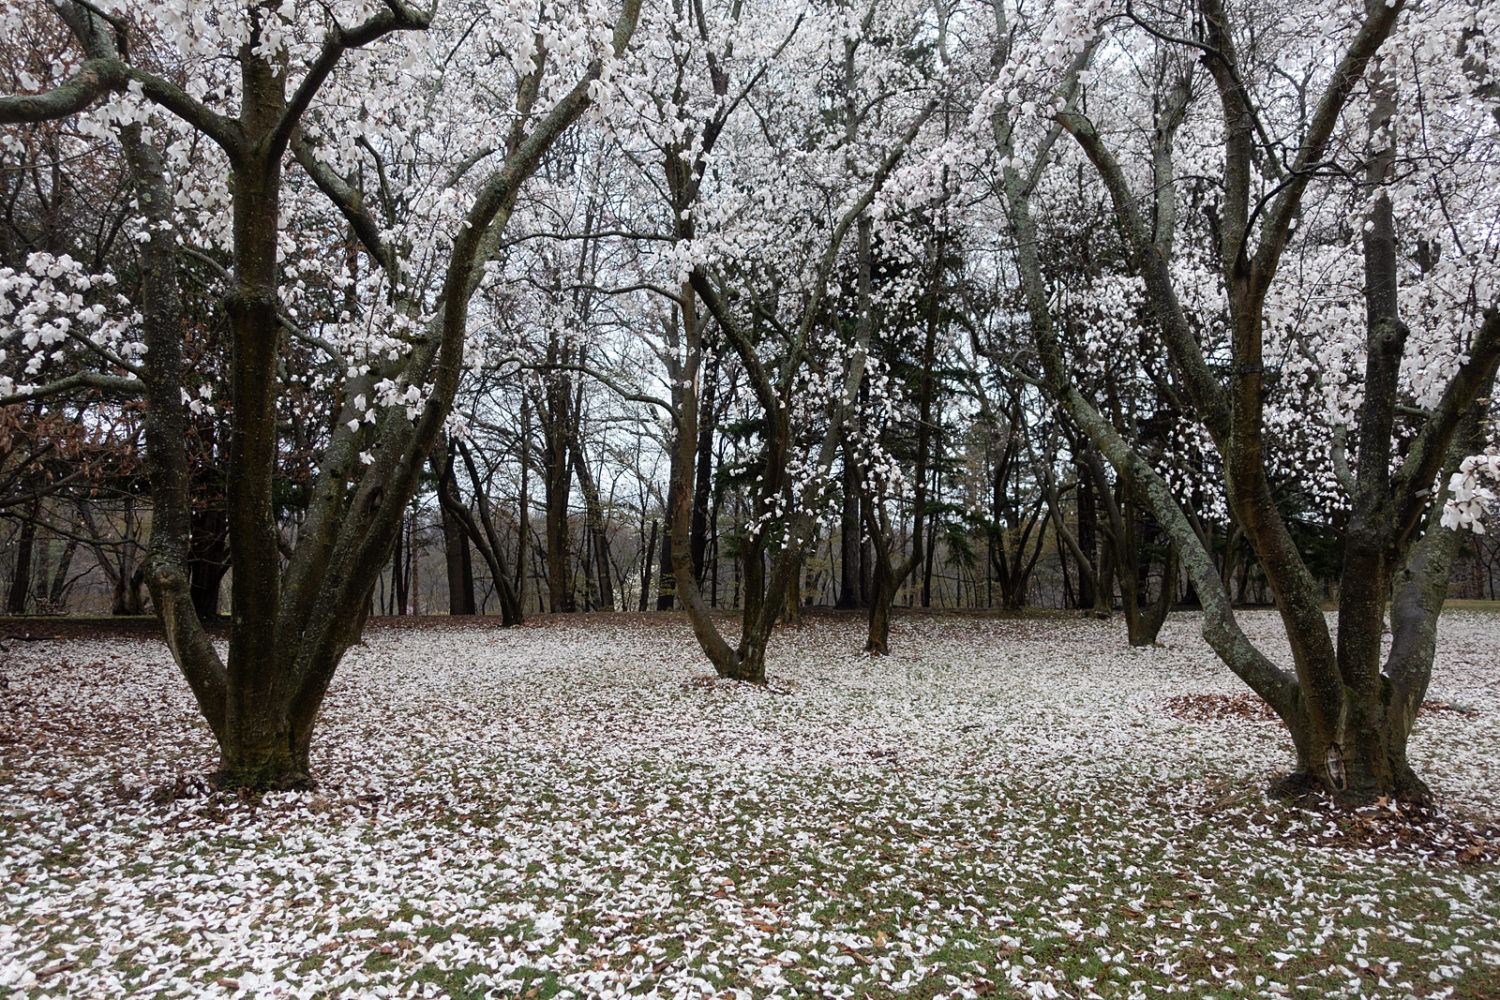 Snowy magnolias on a rainy day